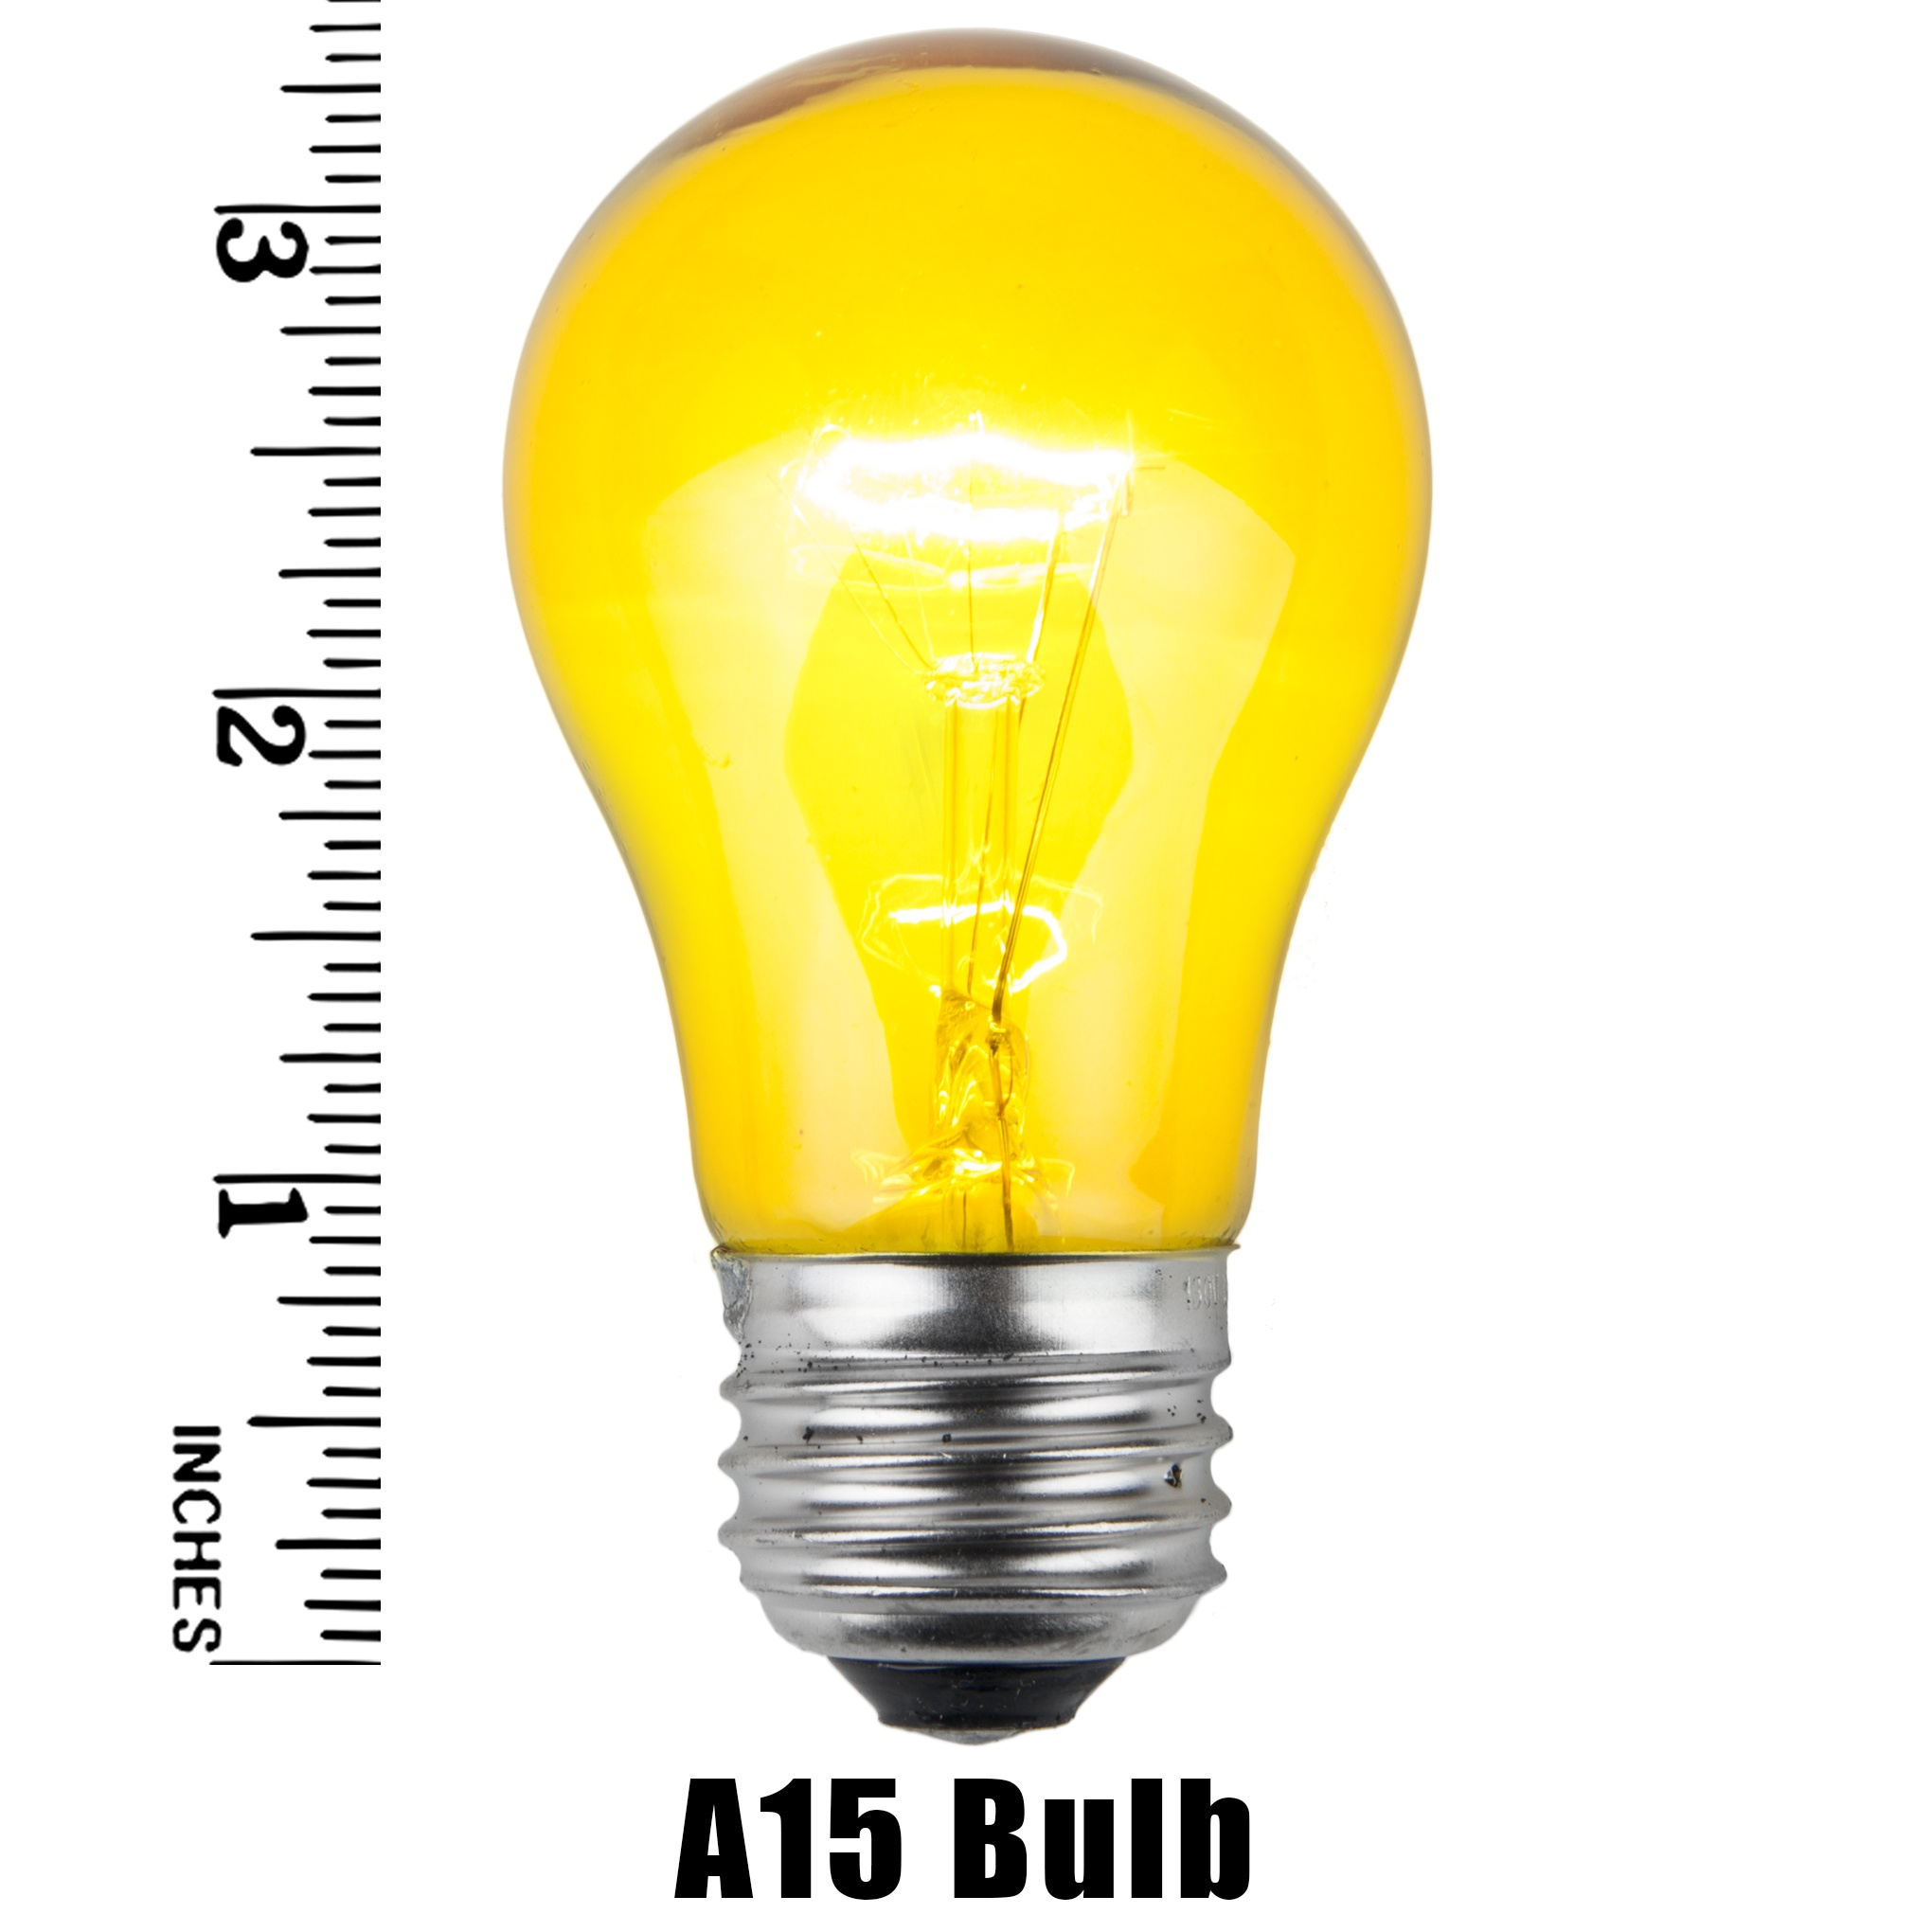 A15 Yellow Transparent Incandescent Bulb Measurement